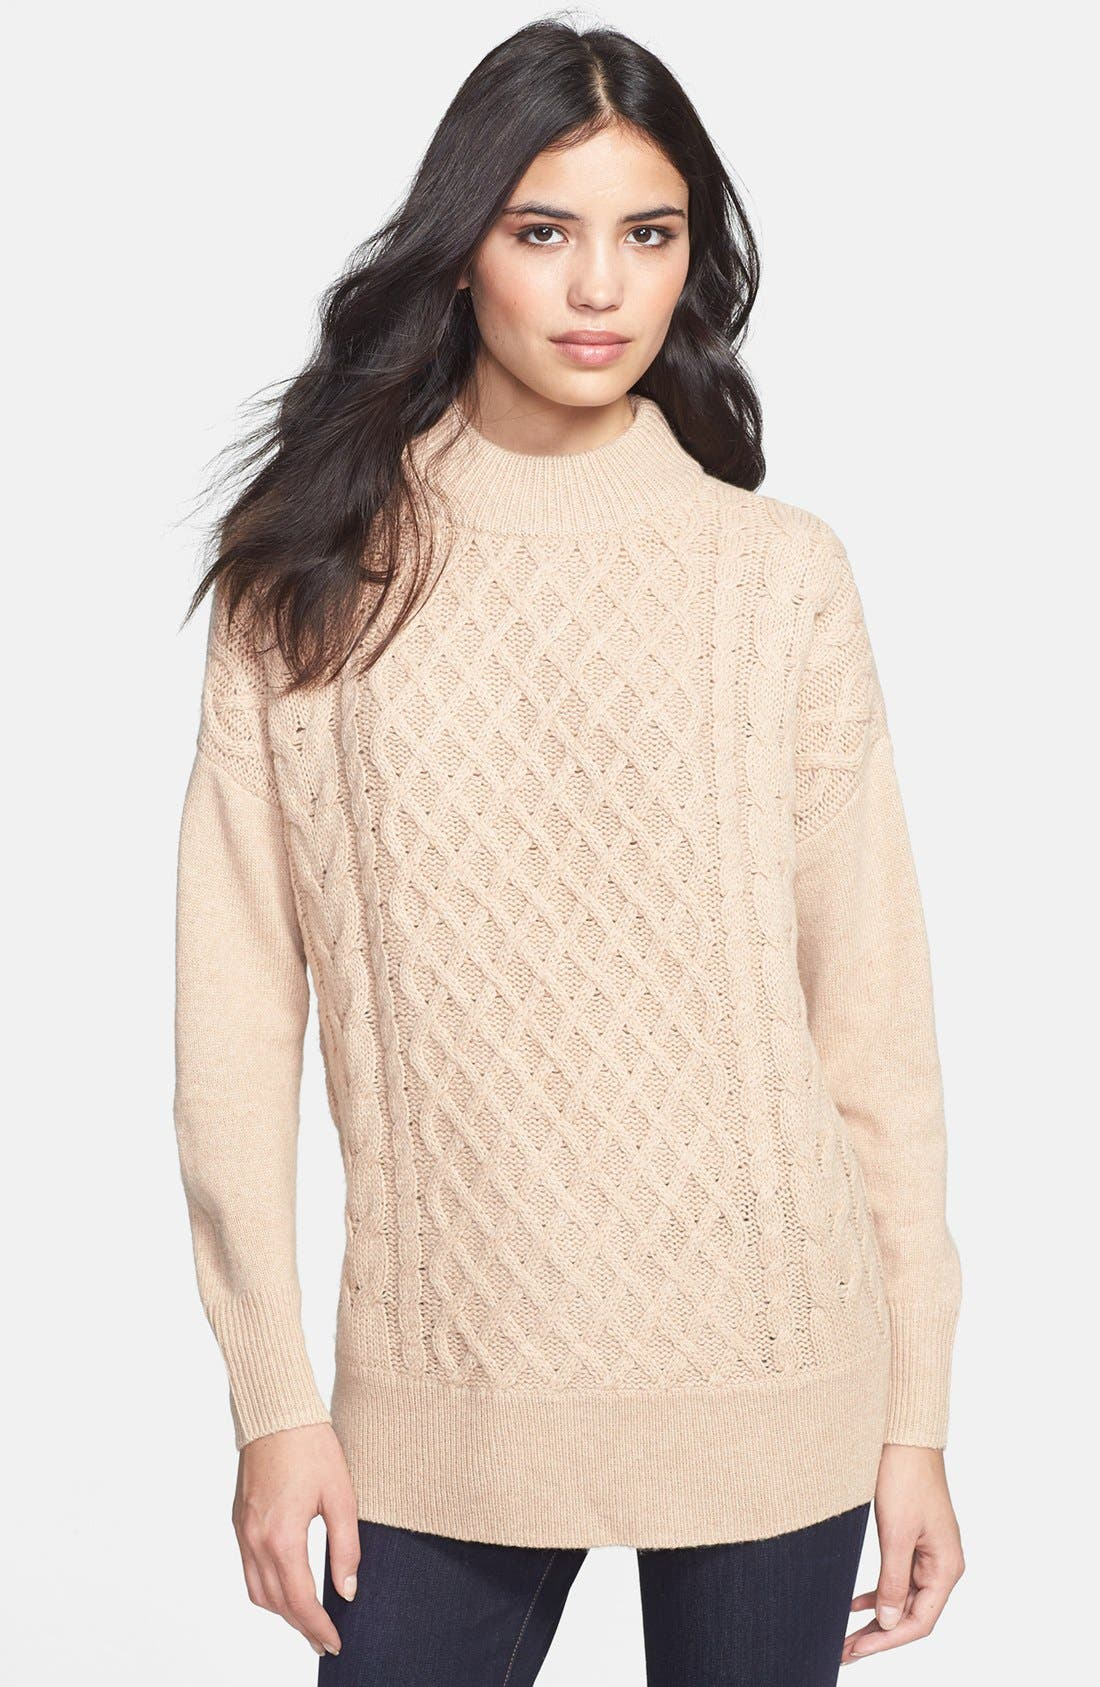 Main Image - Joie 'Bryanne' Cable Knit Sweater